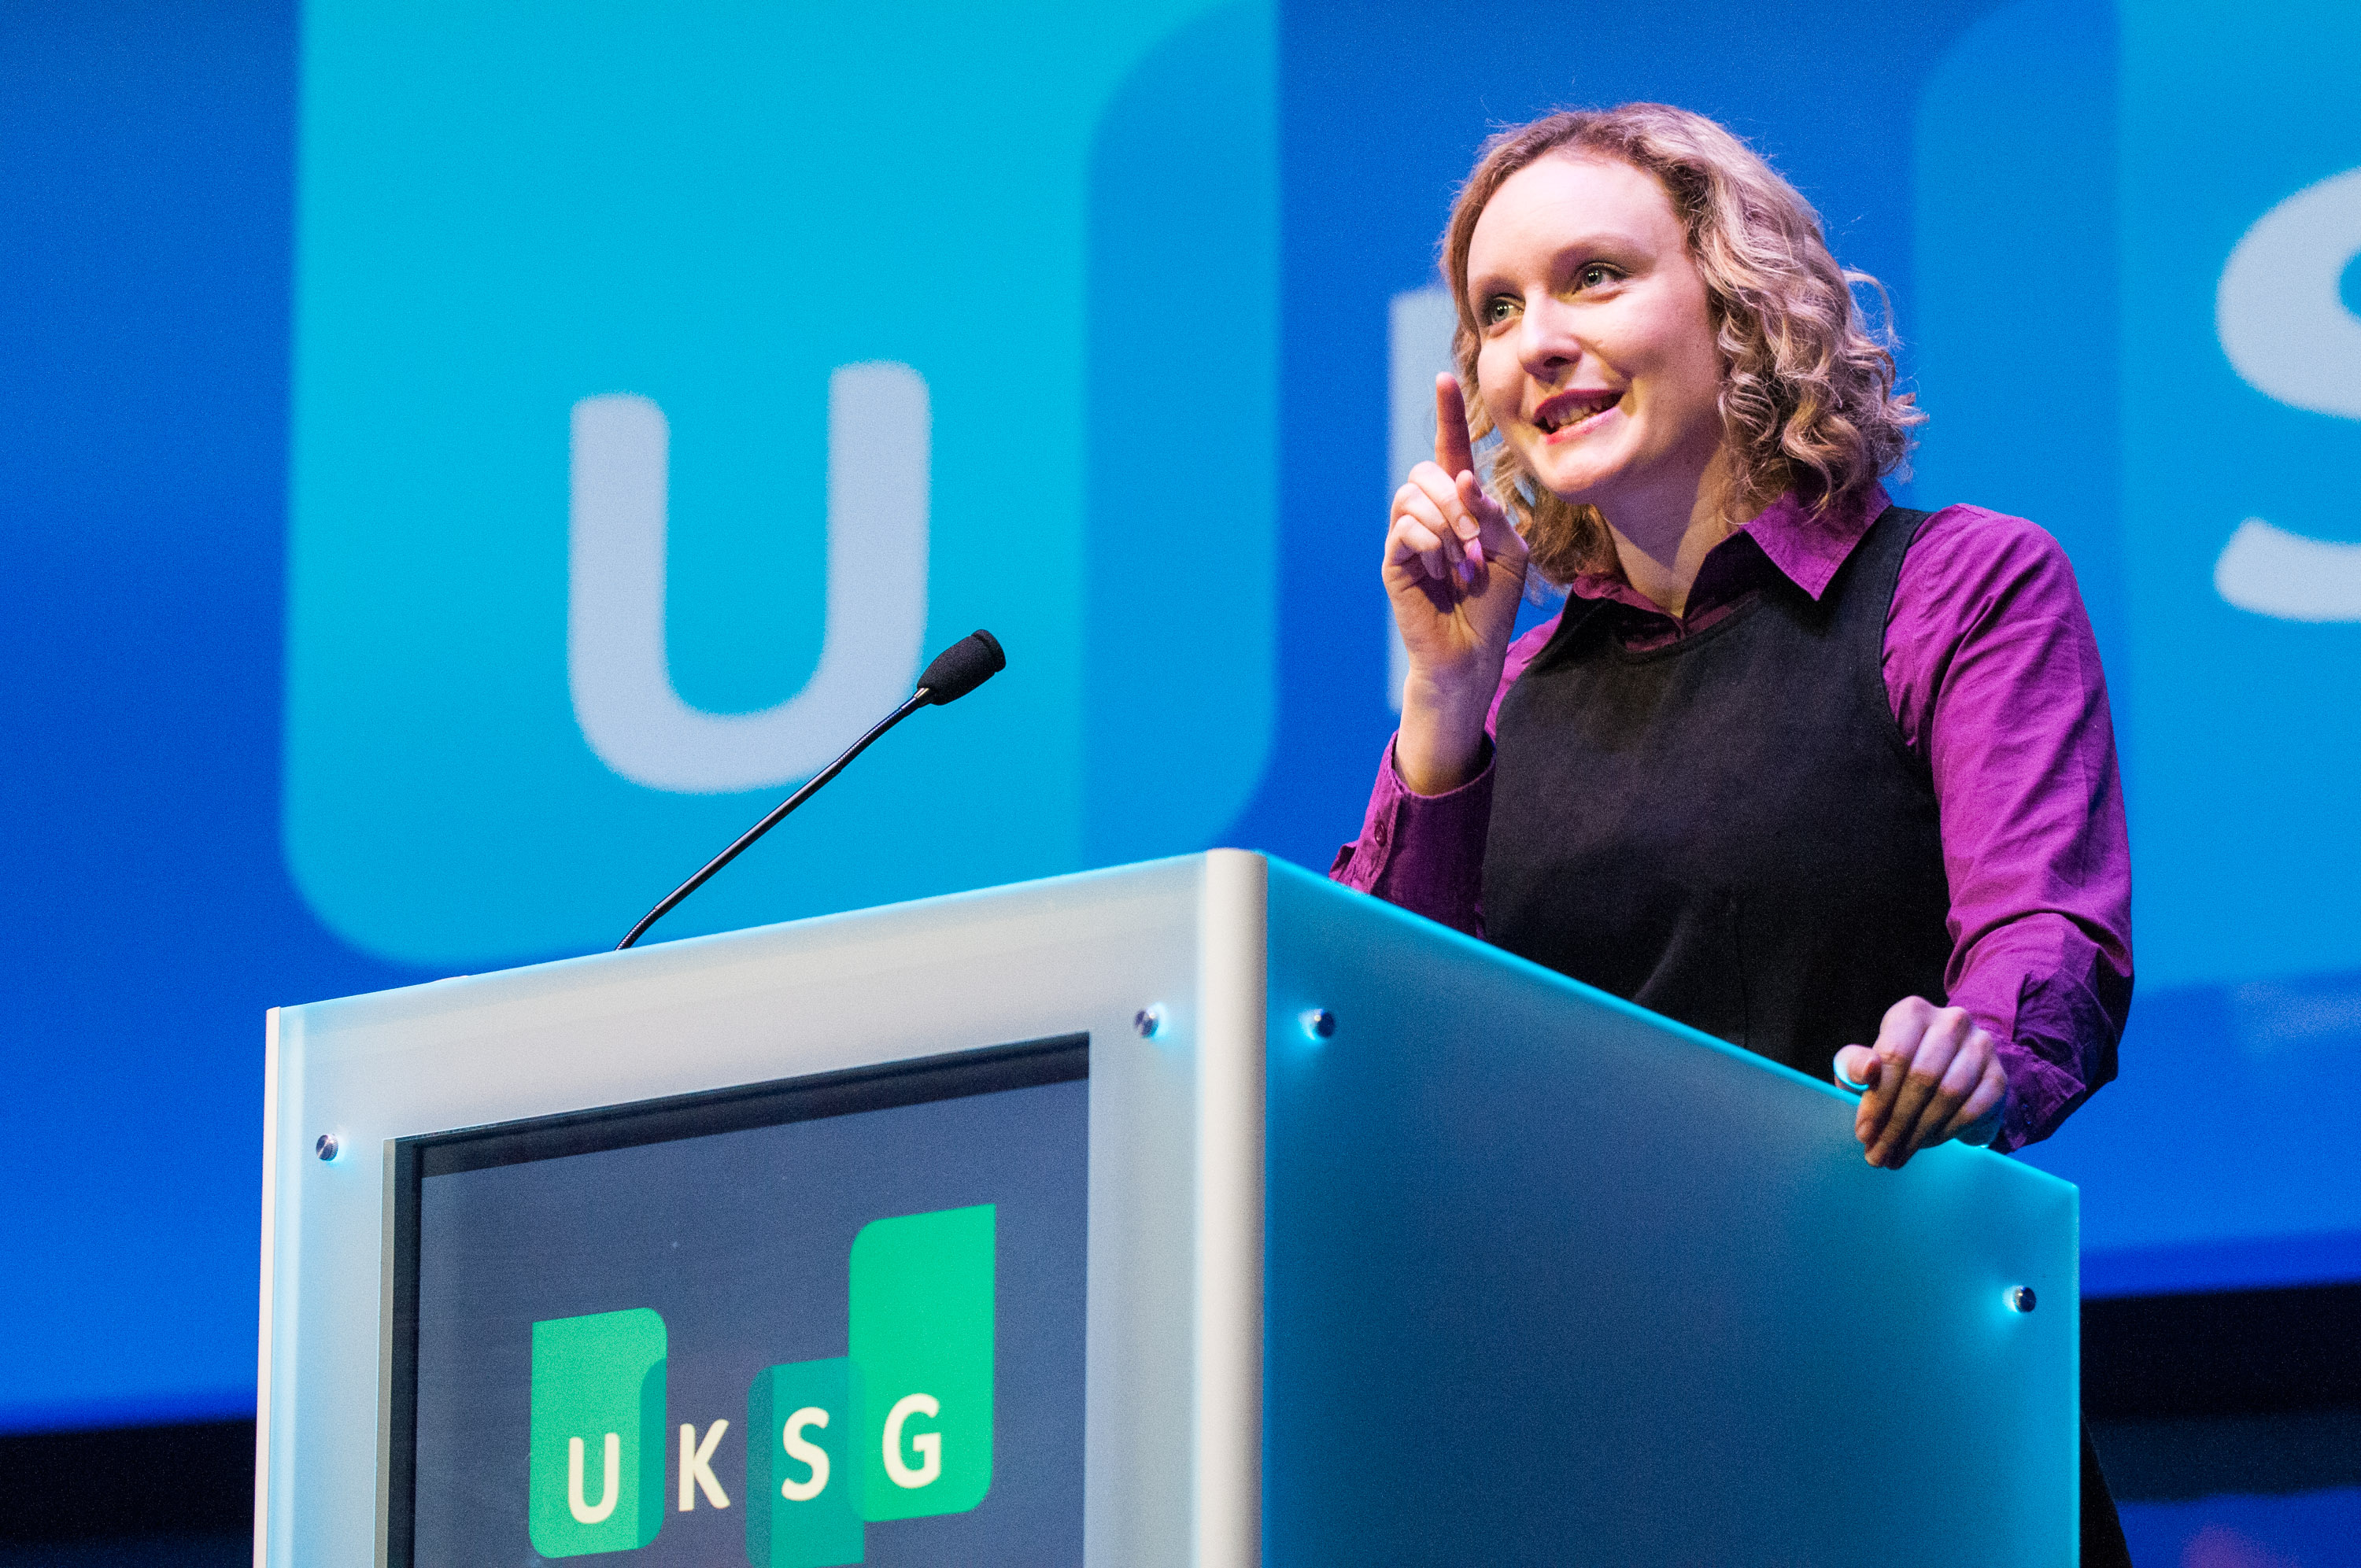 Speaking at UKSG conference